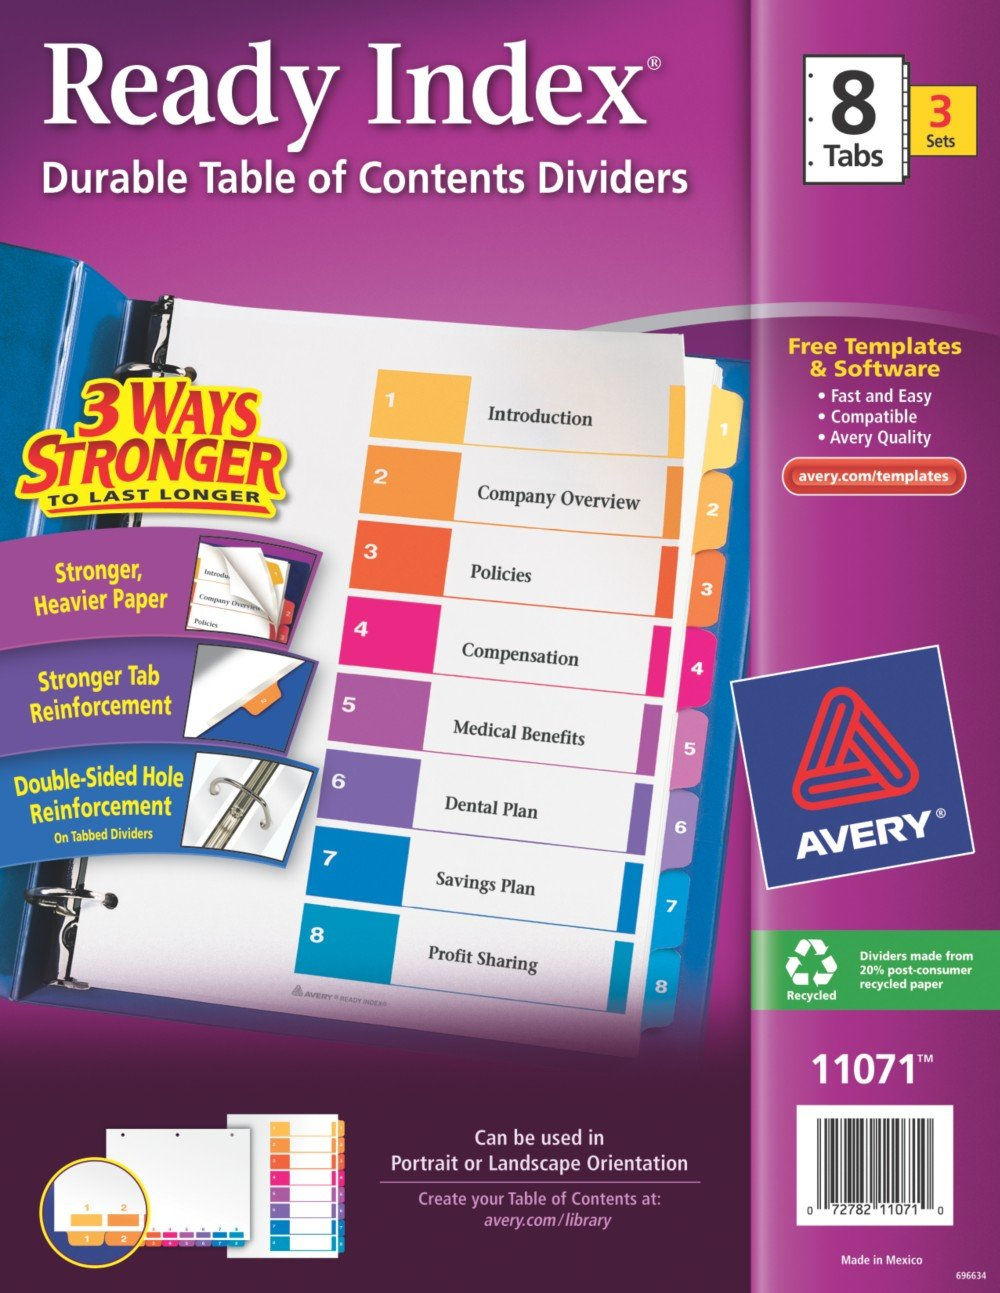 Amazon Avery Ready Index Table Of Contents Dividers 8 Tab Set